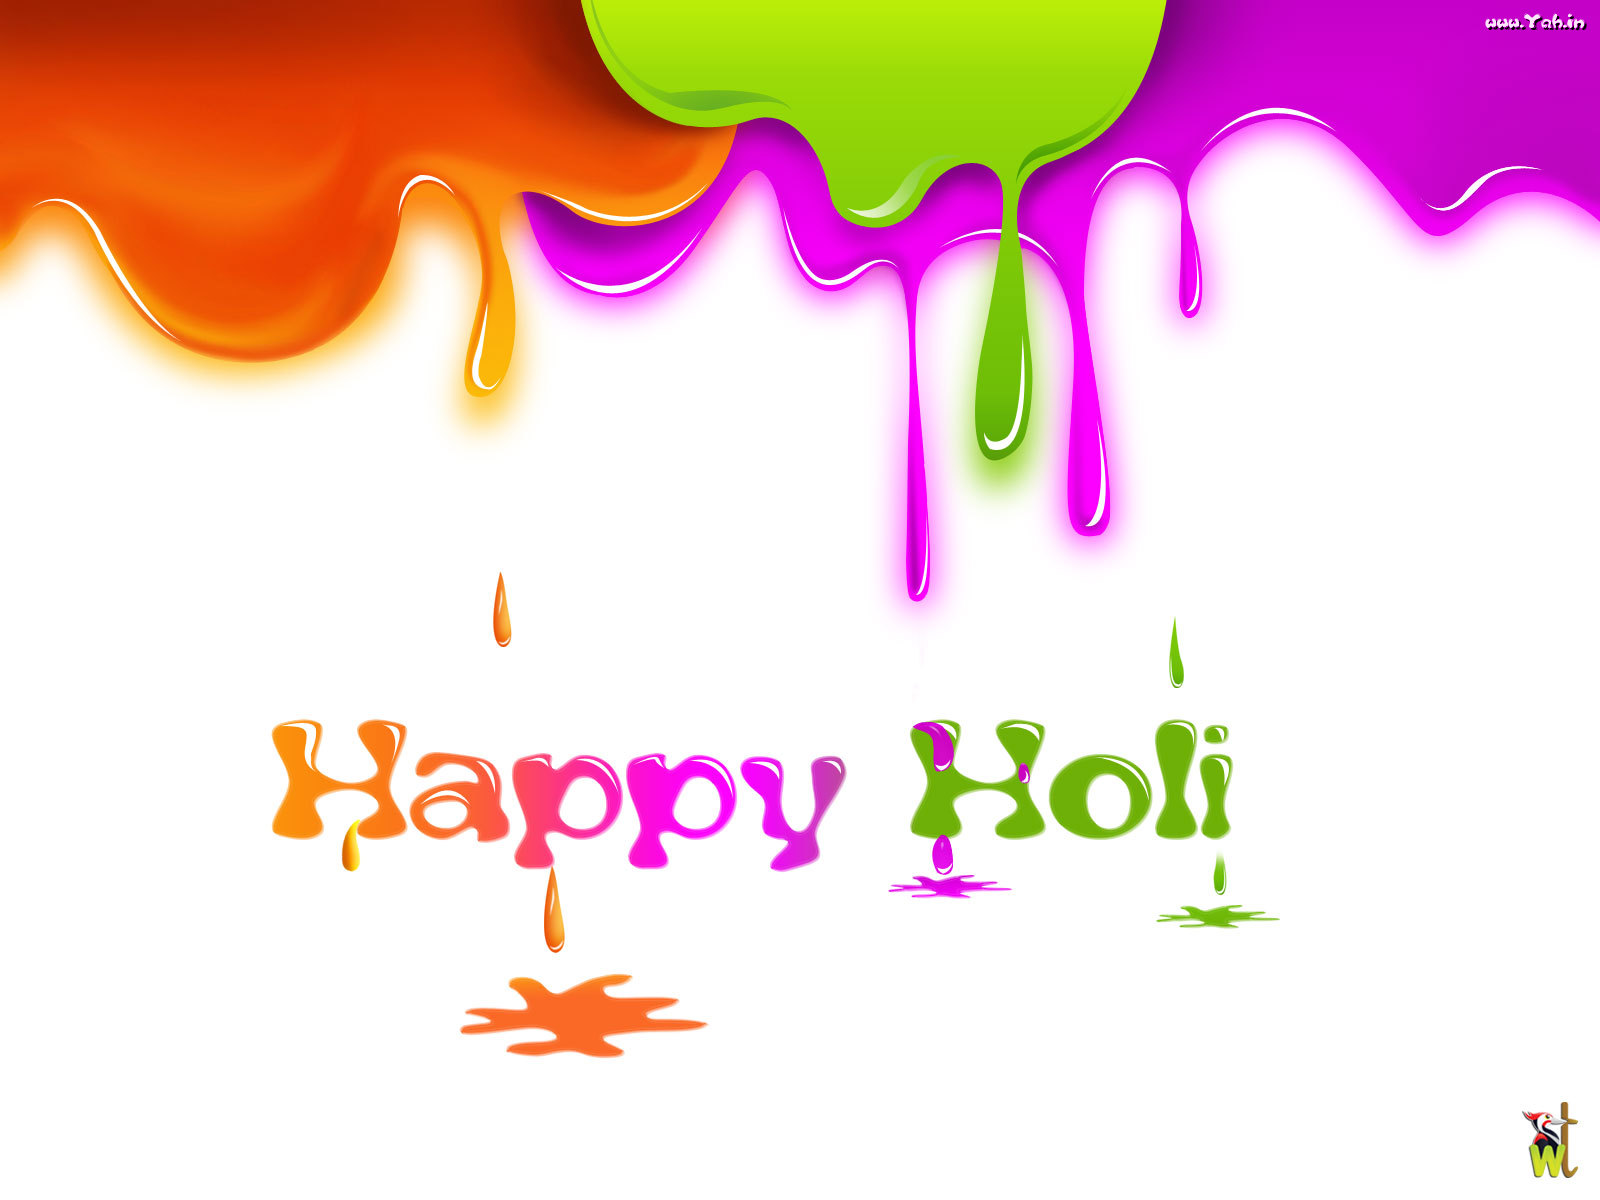 Holi wallpapers 2013 Holi wallpapers valentine messages wallpapers 1600x1200